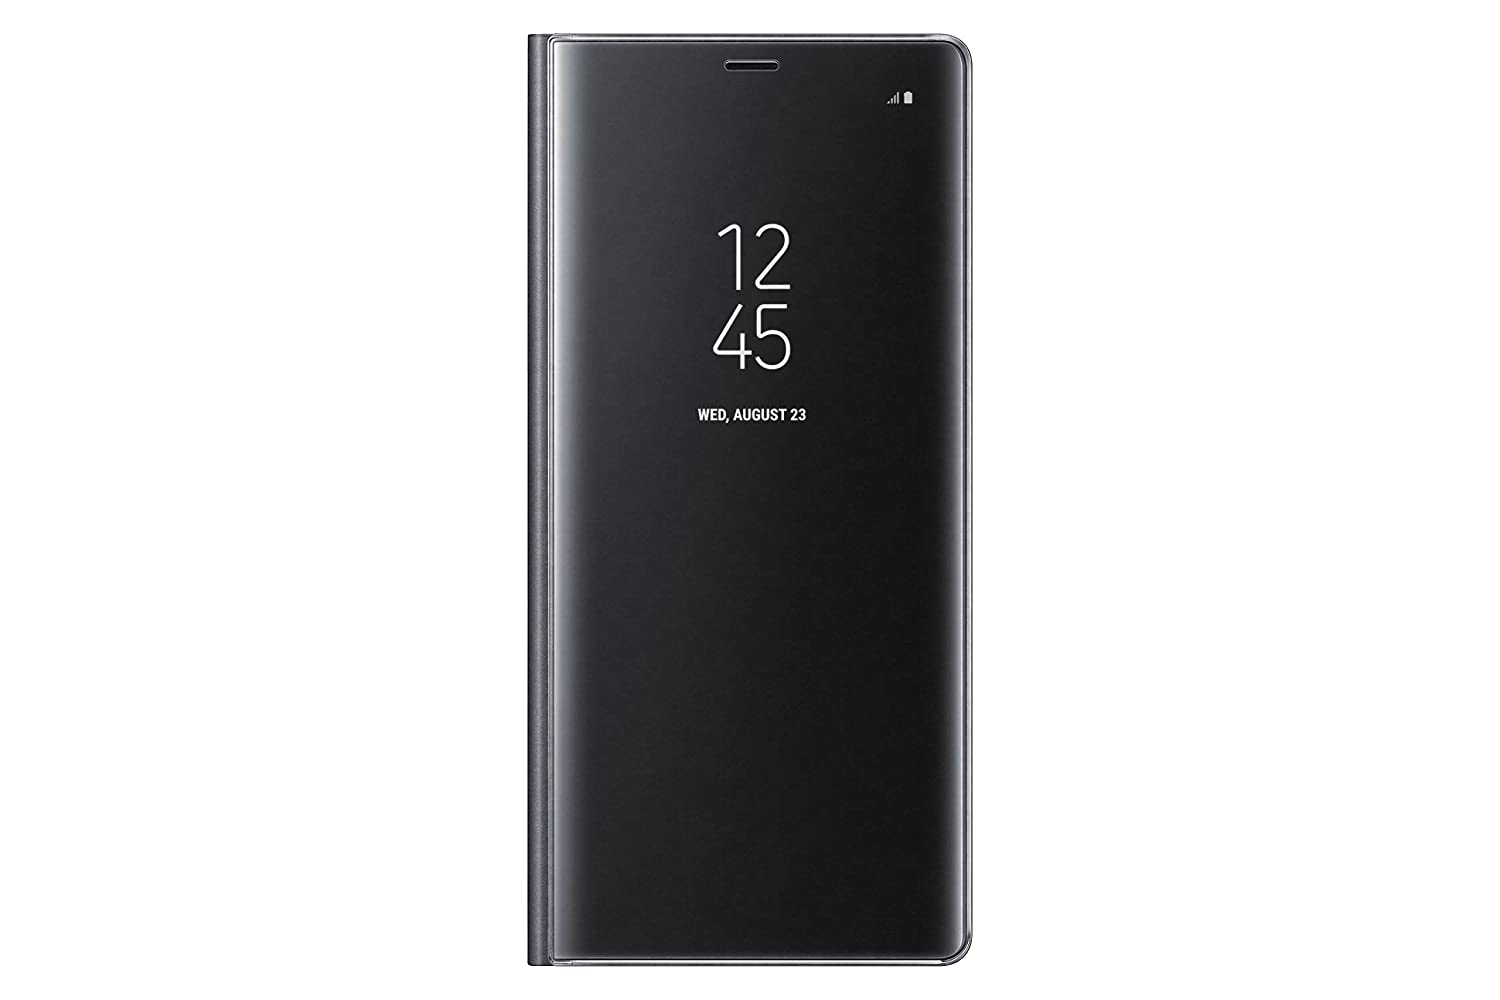 Samsung EF-ZN950CBEGUS Galaxy Note8 S-View Flip Cover with Kickstand, Black